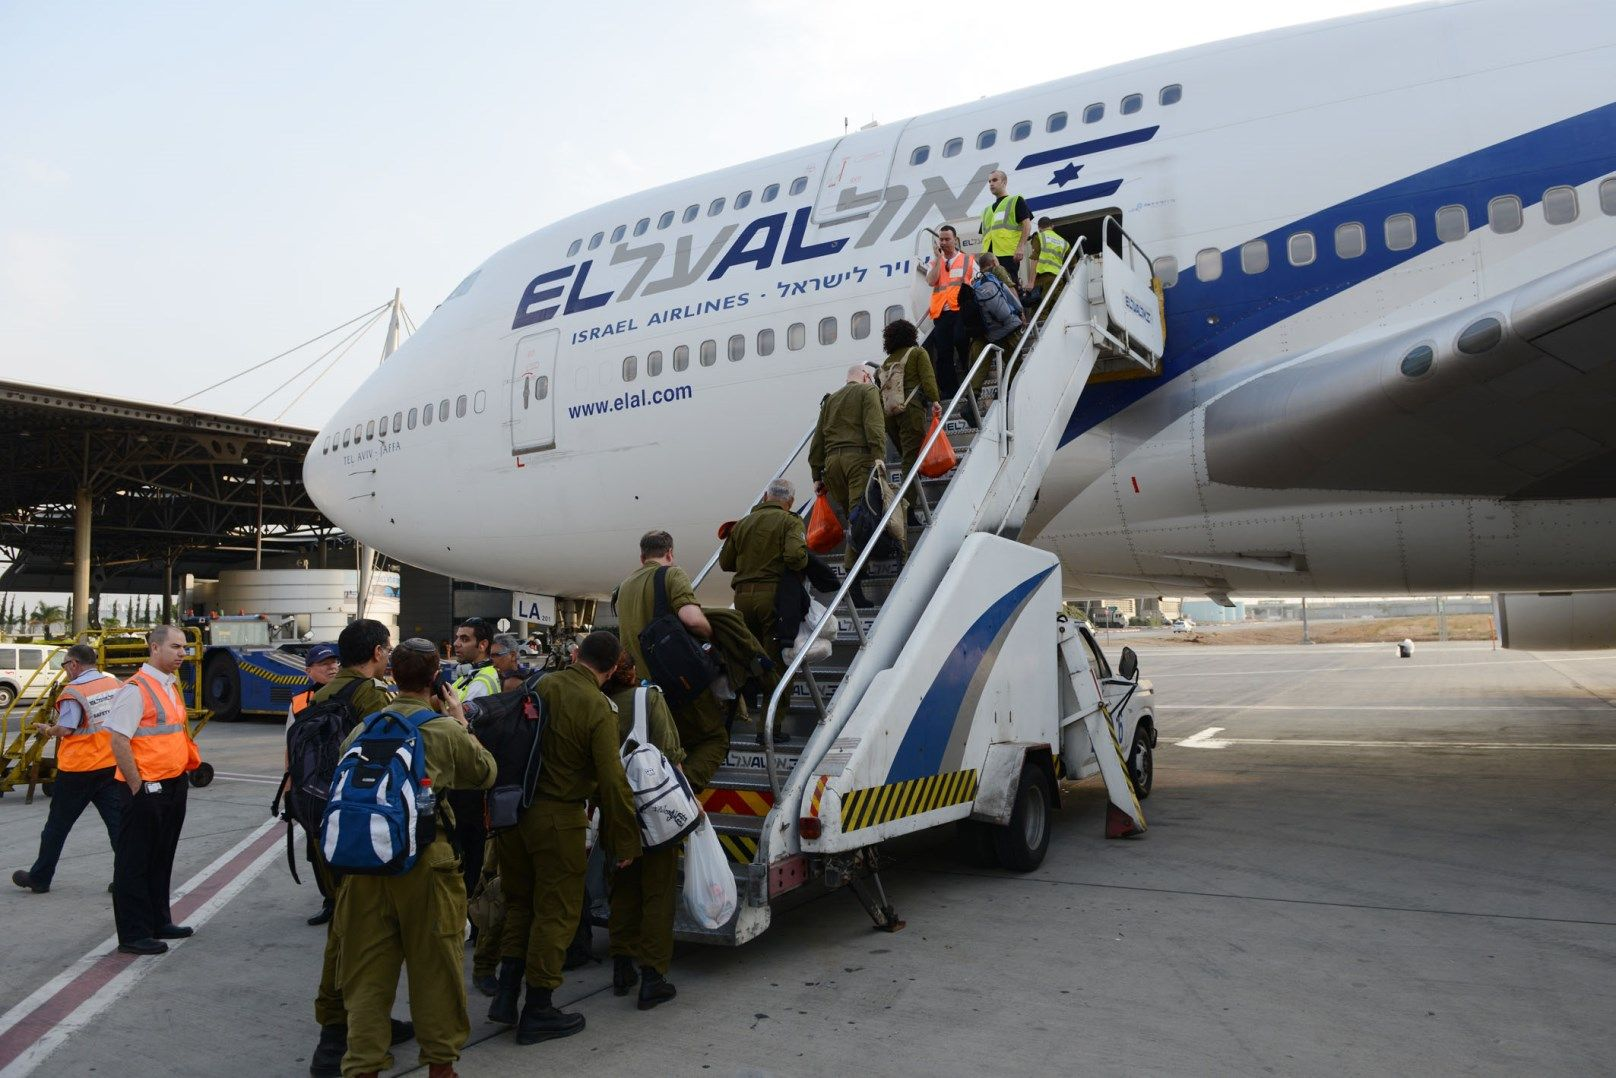 IDF rescue workers boarding an airplane to the Philippines on November 13, 2013. Photo by IDF Spokesperson/FLASH90.